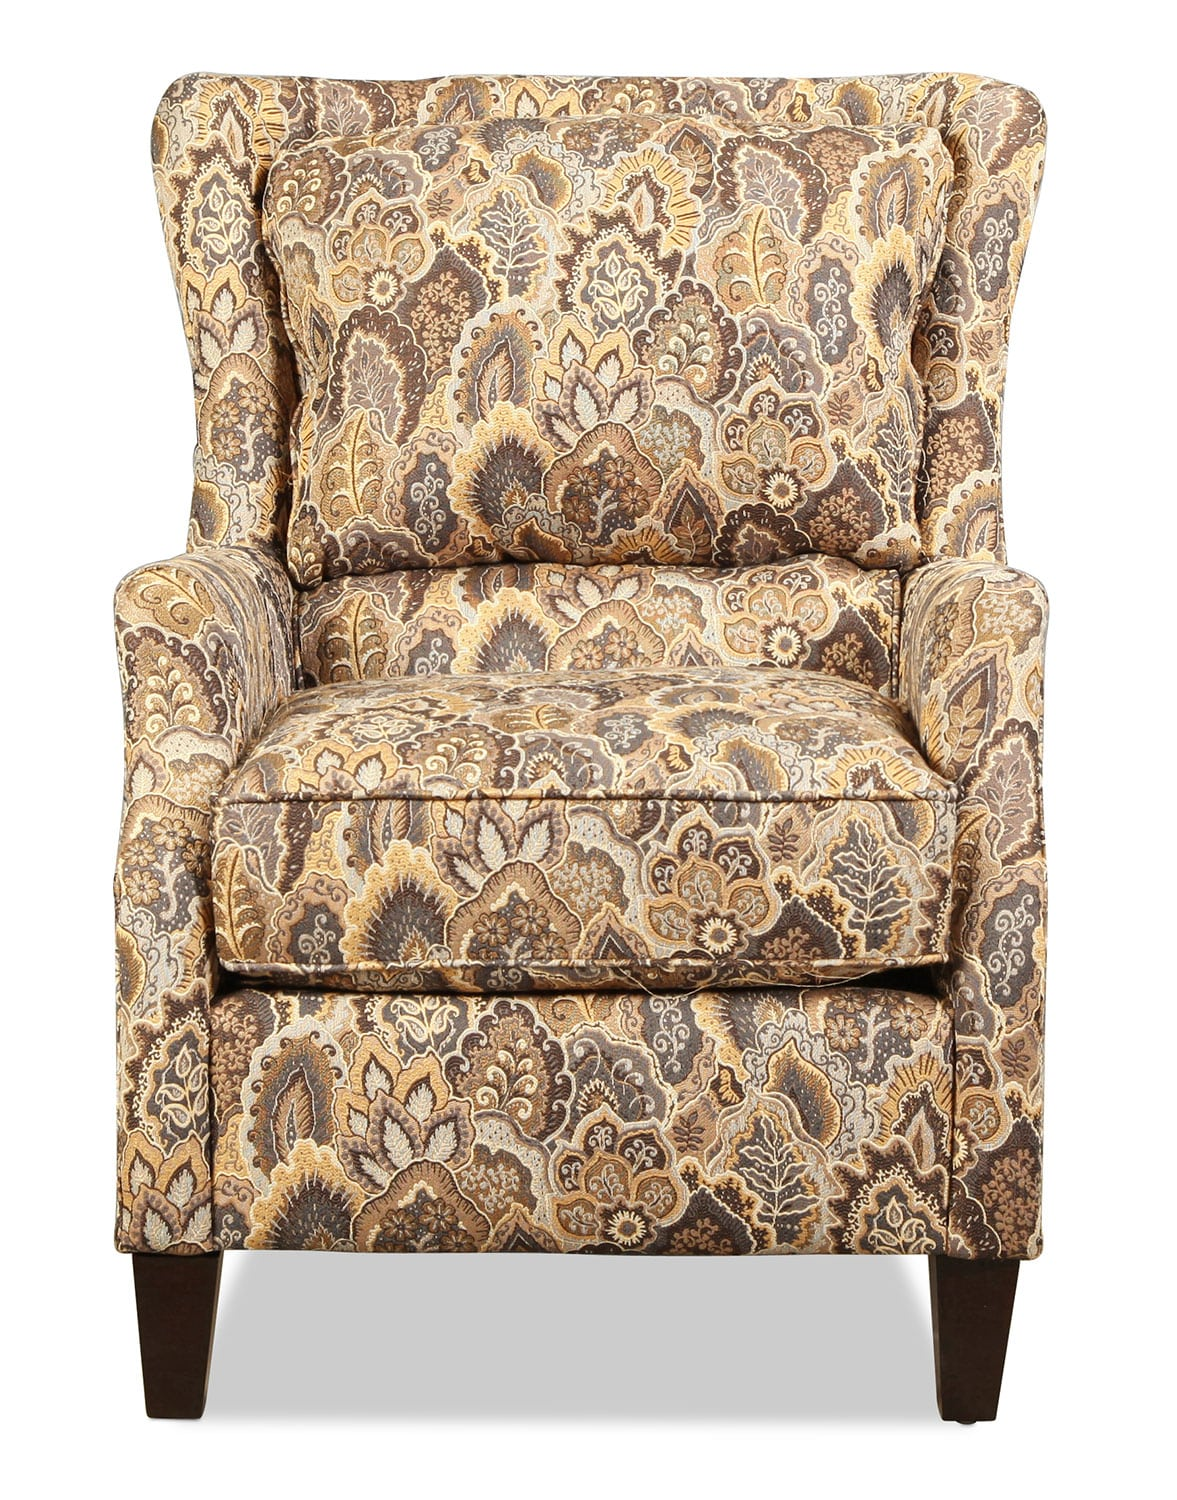 Living Room Furniture - Murphy Accent Chair - Peacock